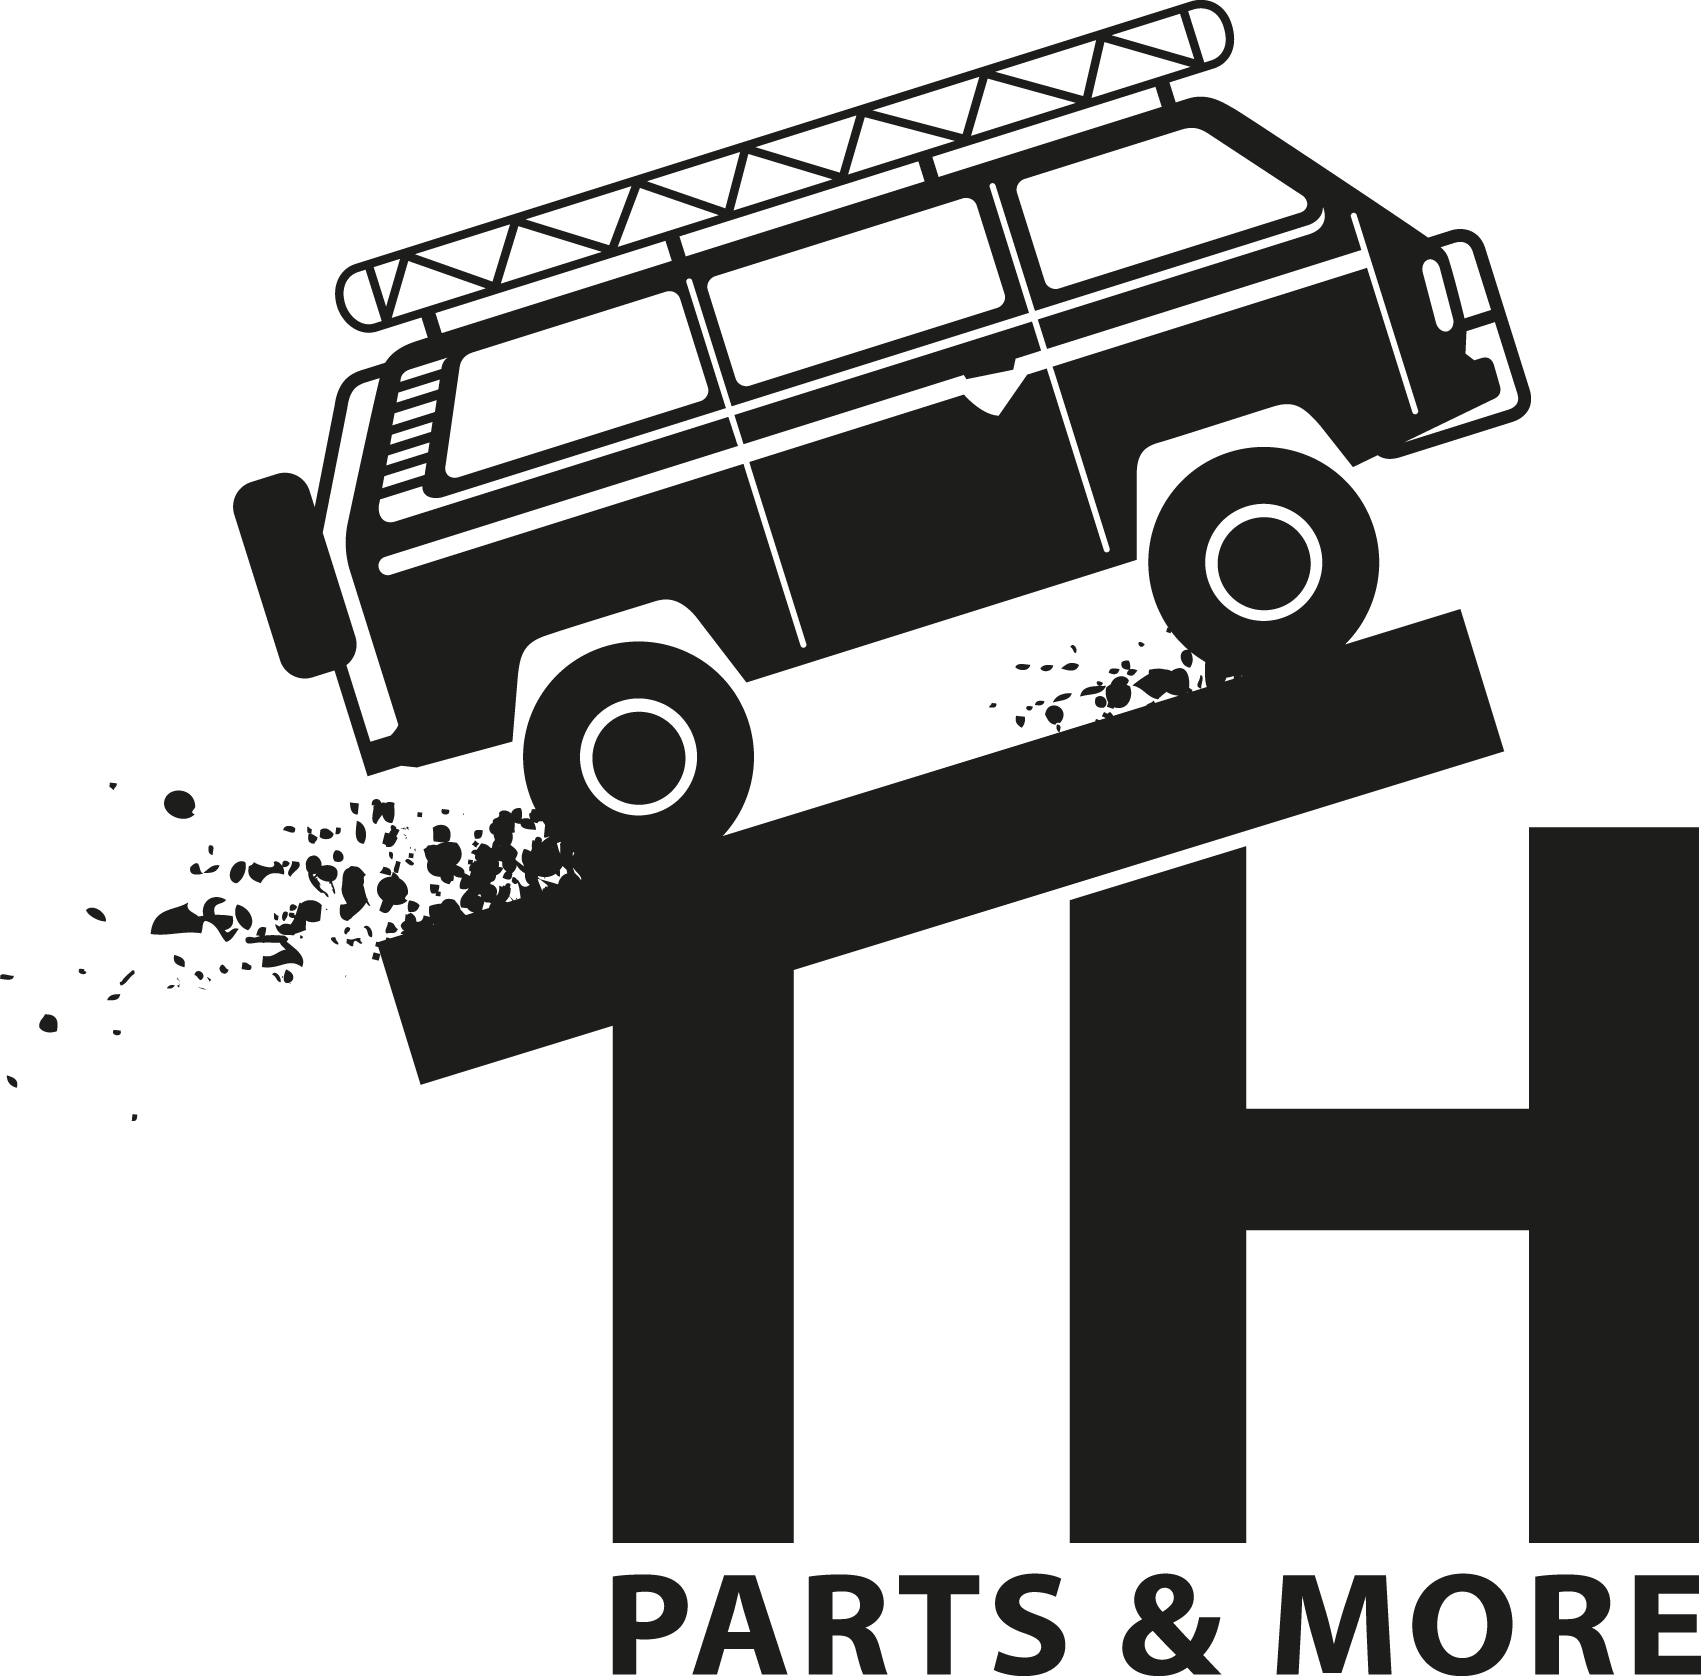 TH Parts and more